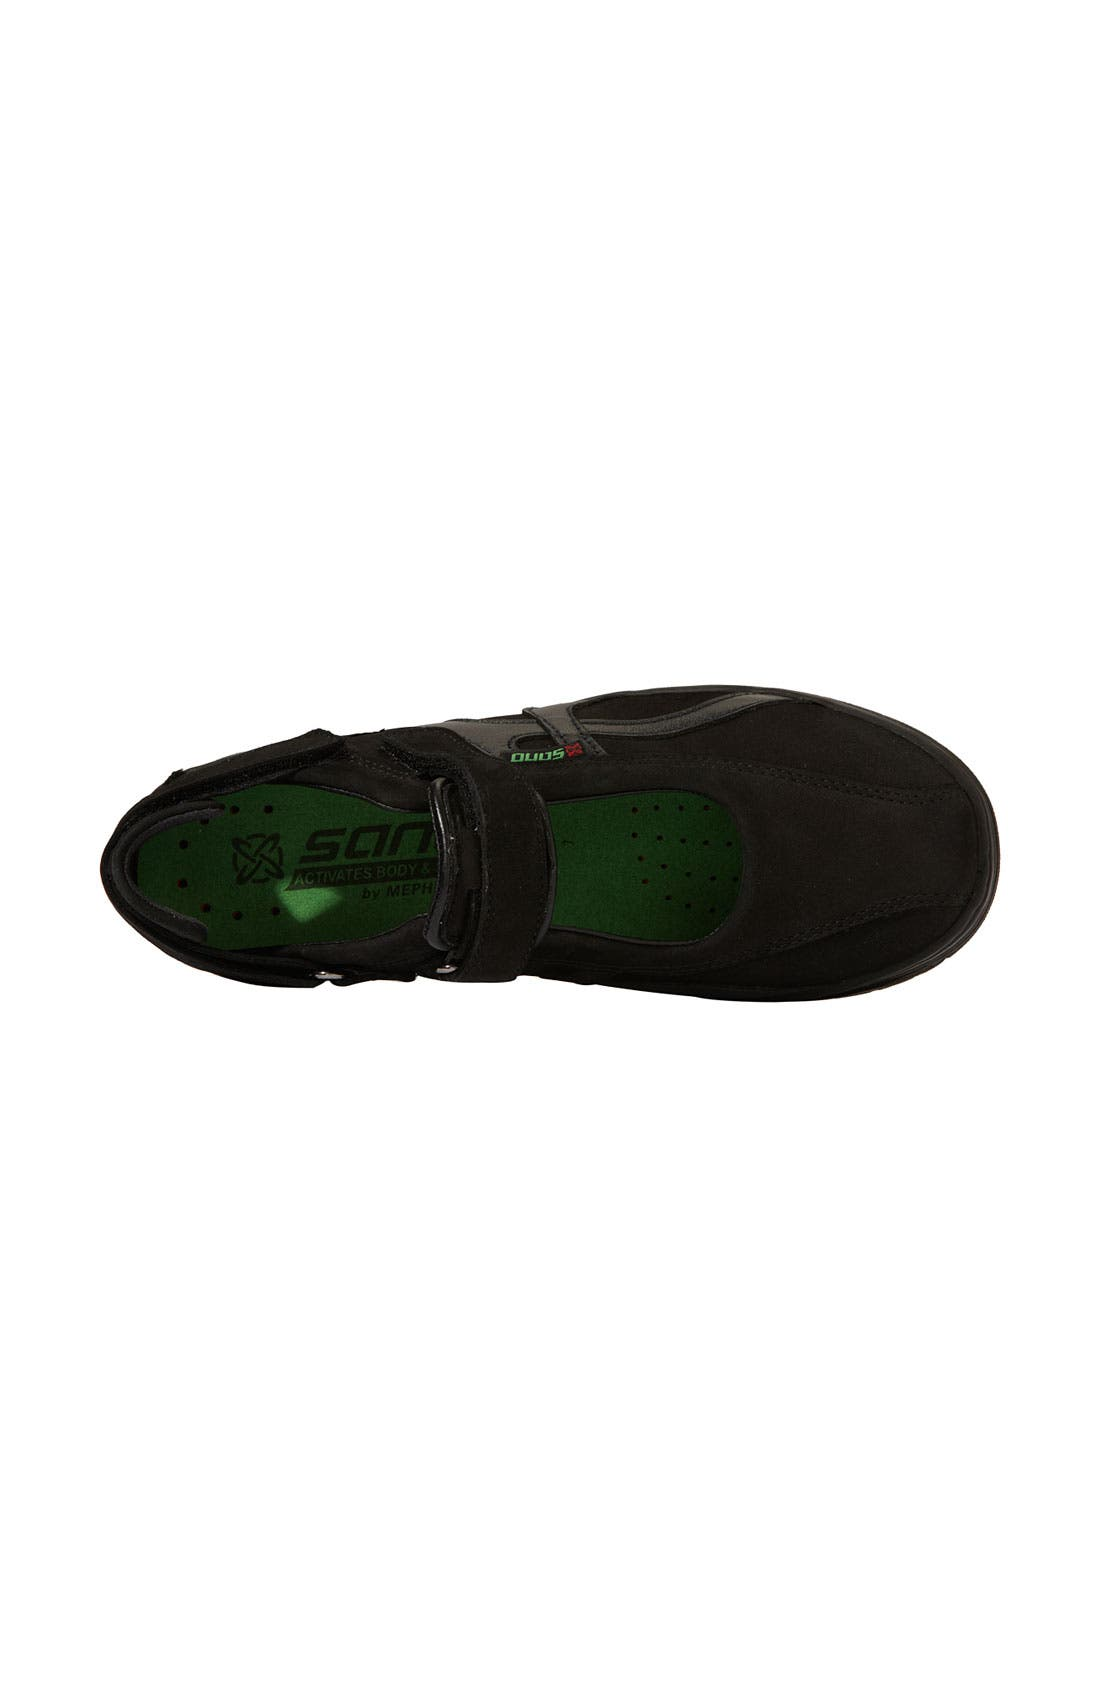 Sano by Mephisto 'Excess' Walking Shoe,                             Alternate thumbnail 9, color,